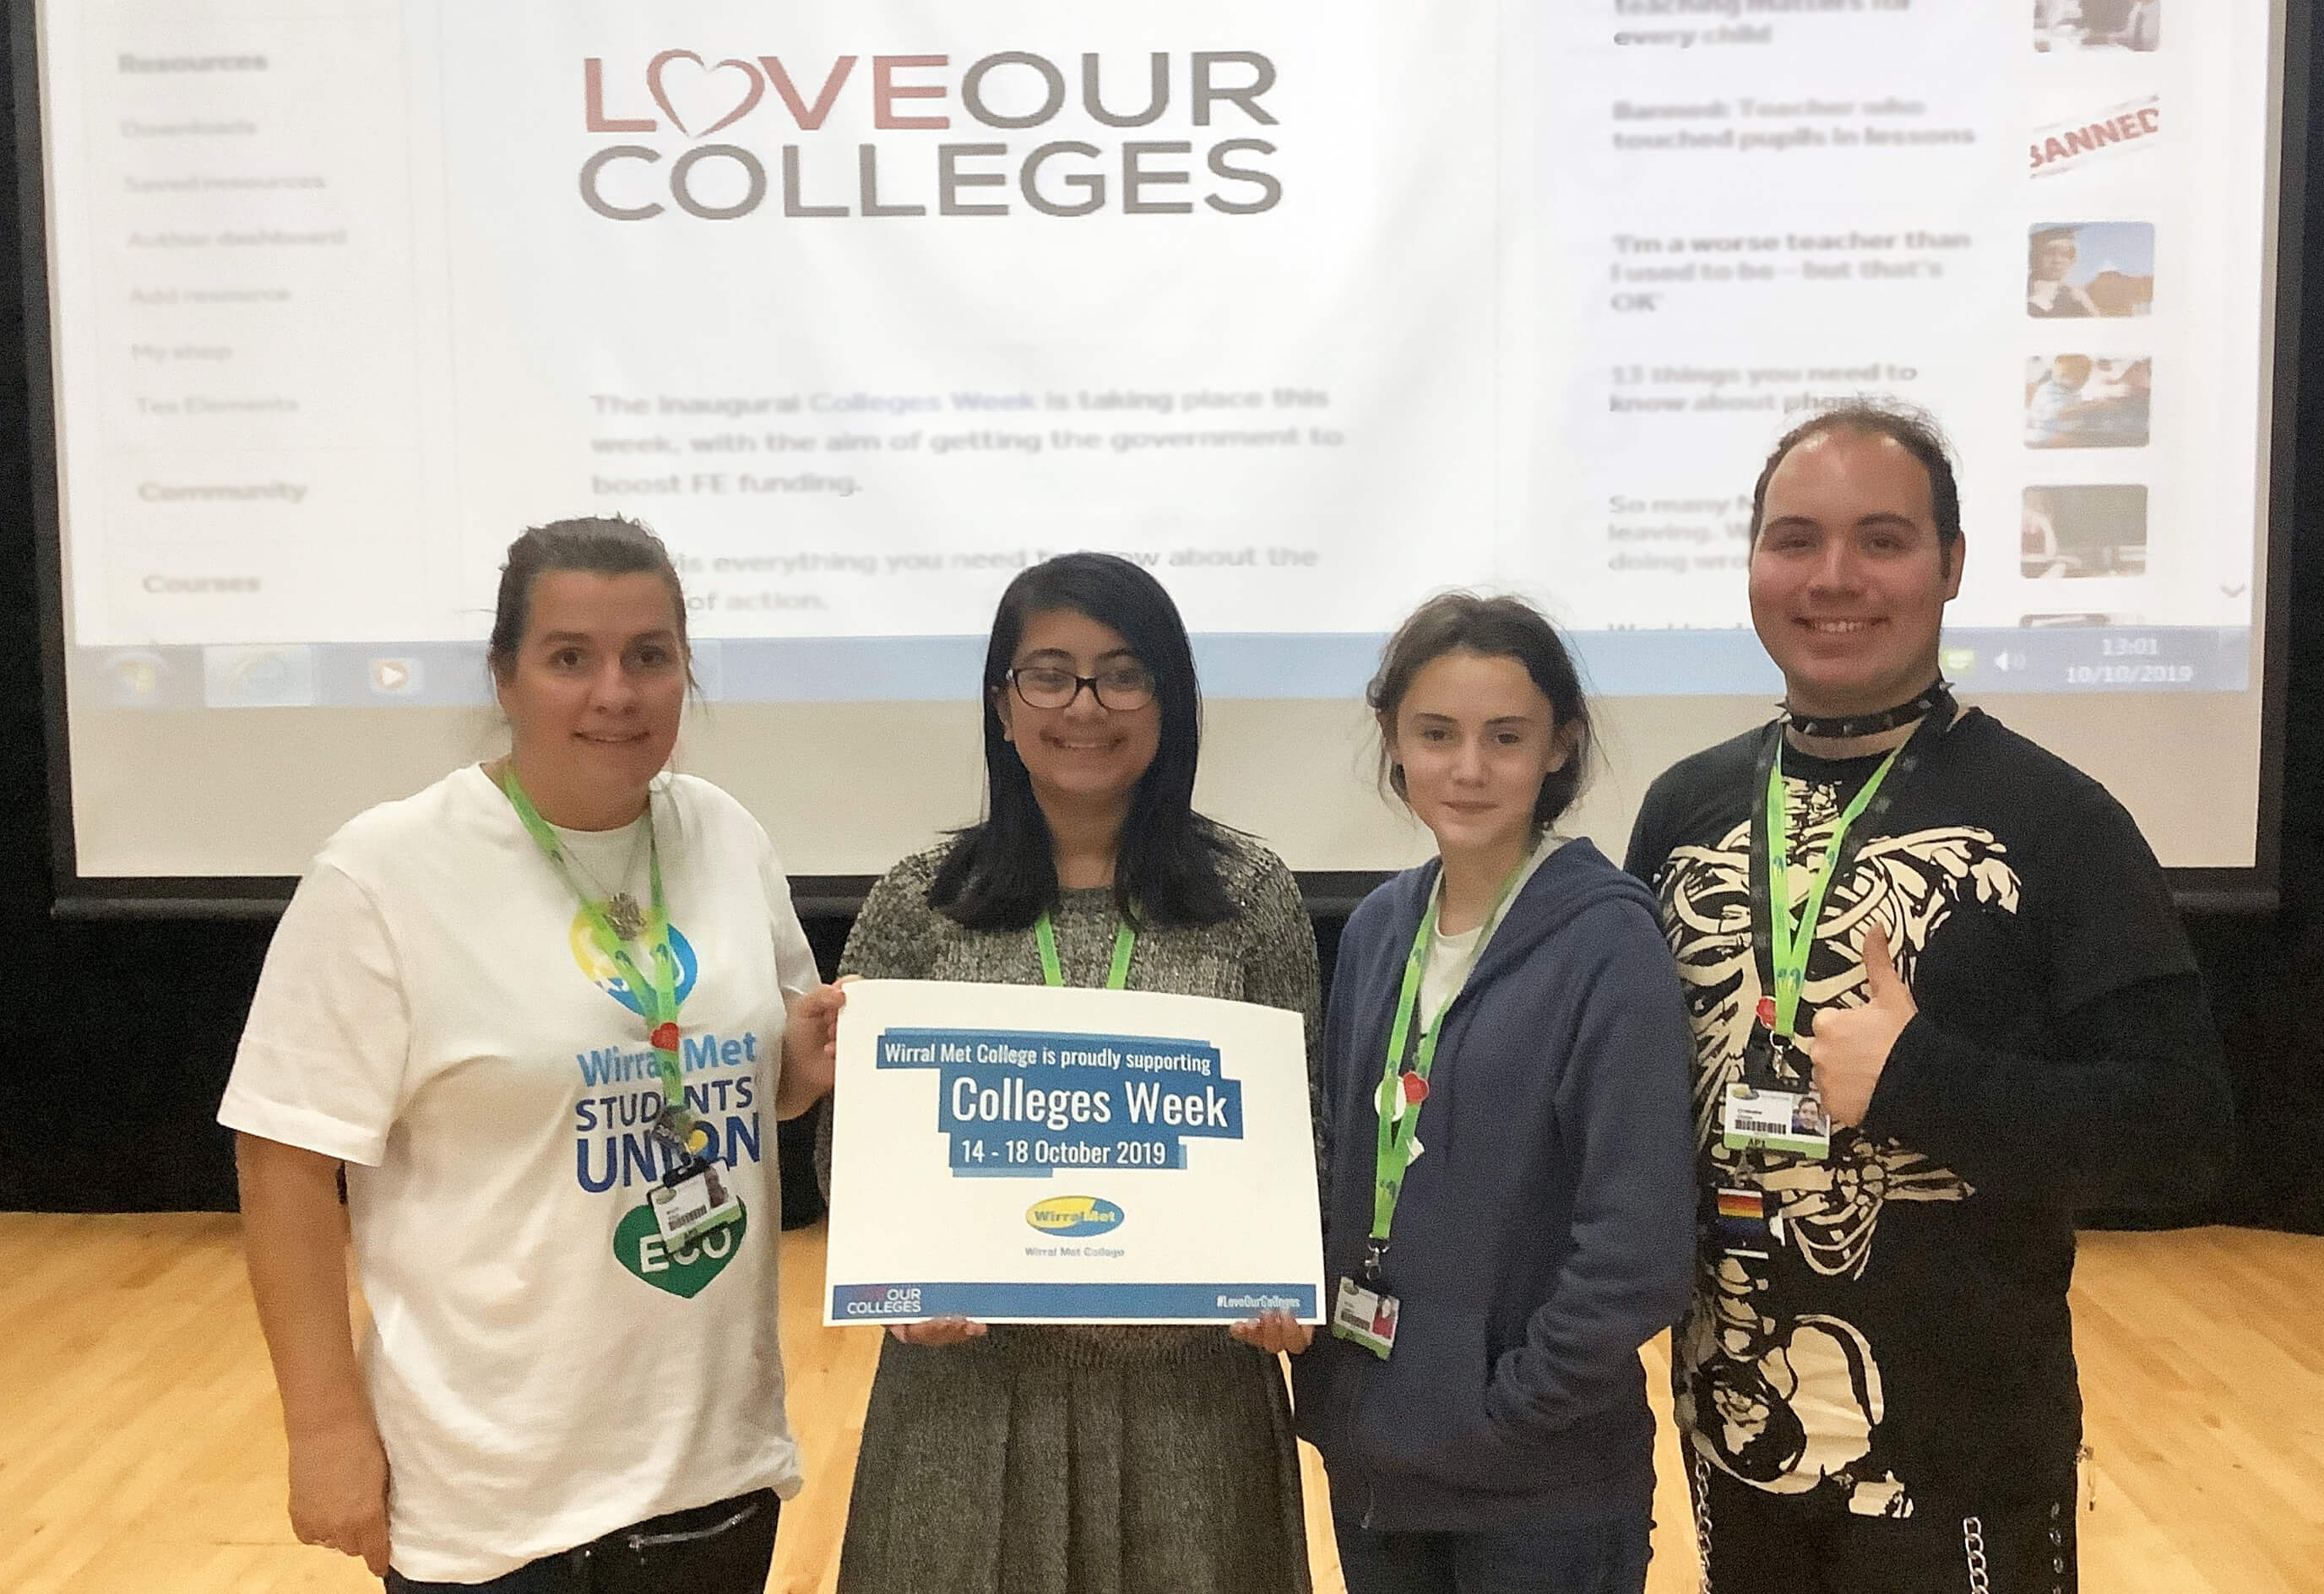 Wirral Met College launches Love Our Colleges video competition 2020